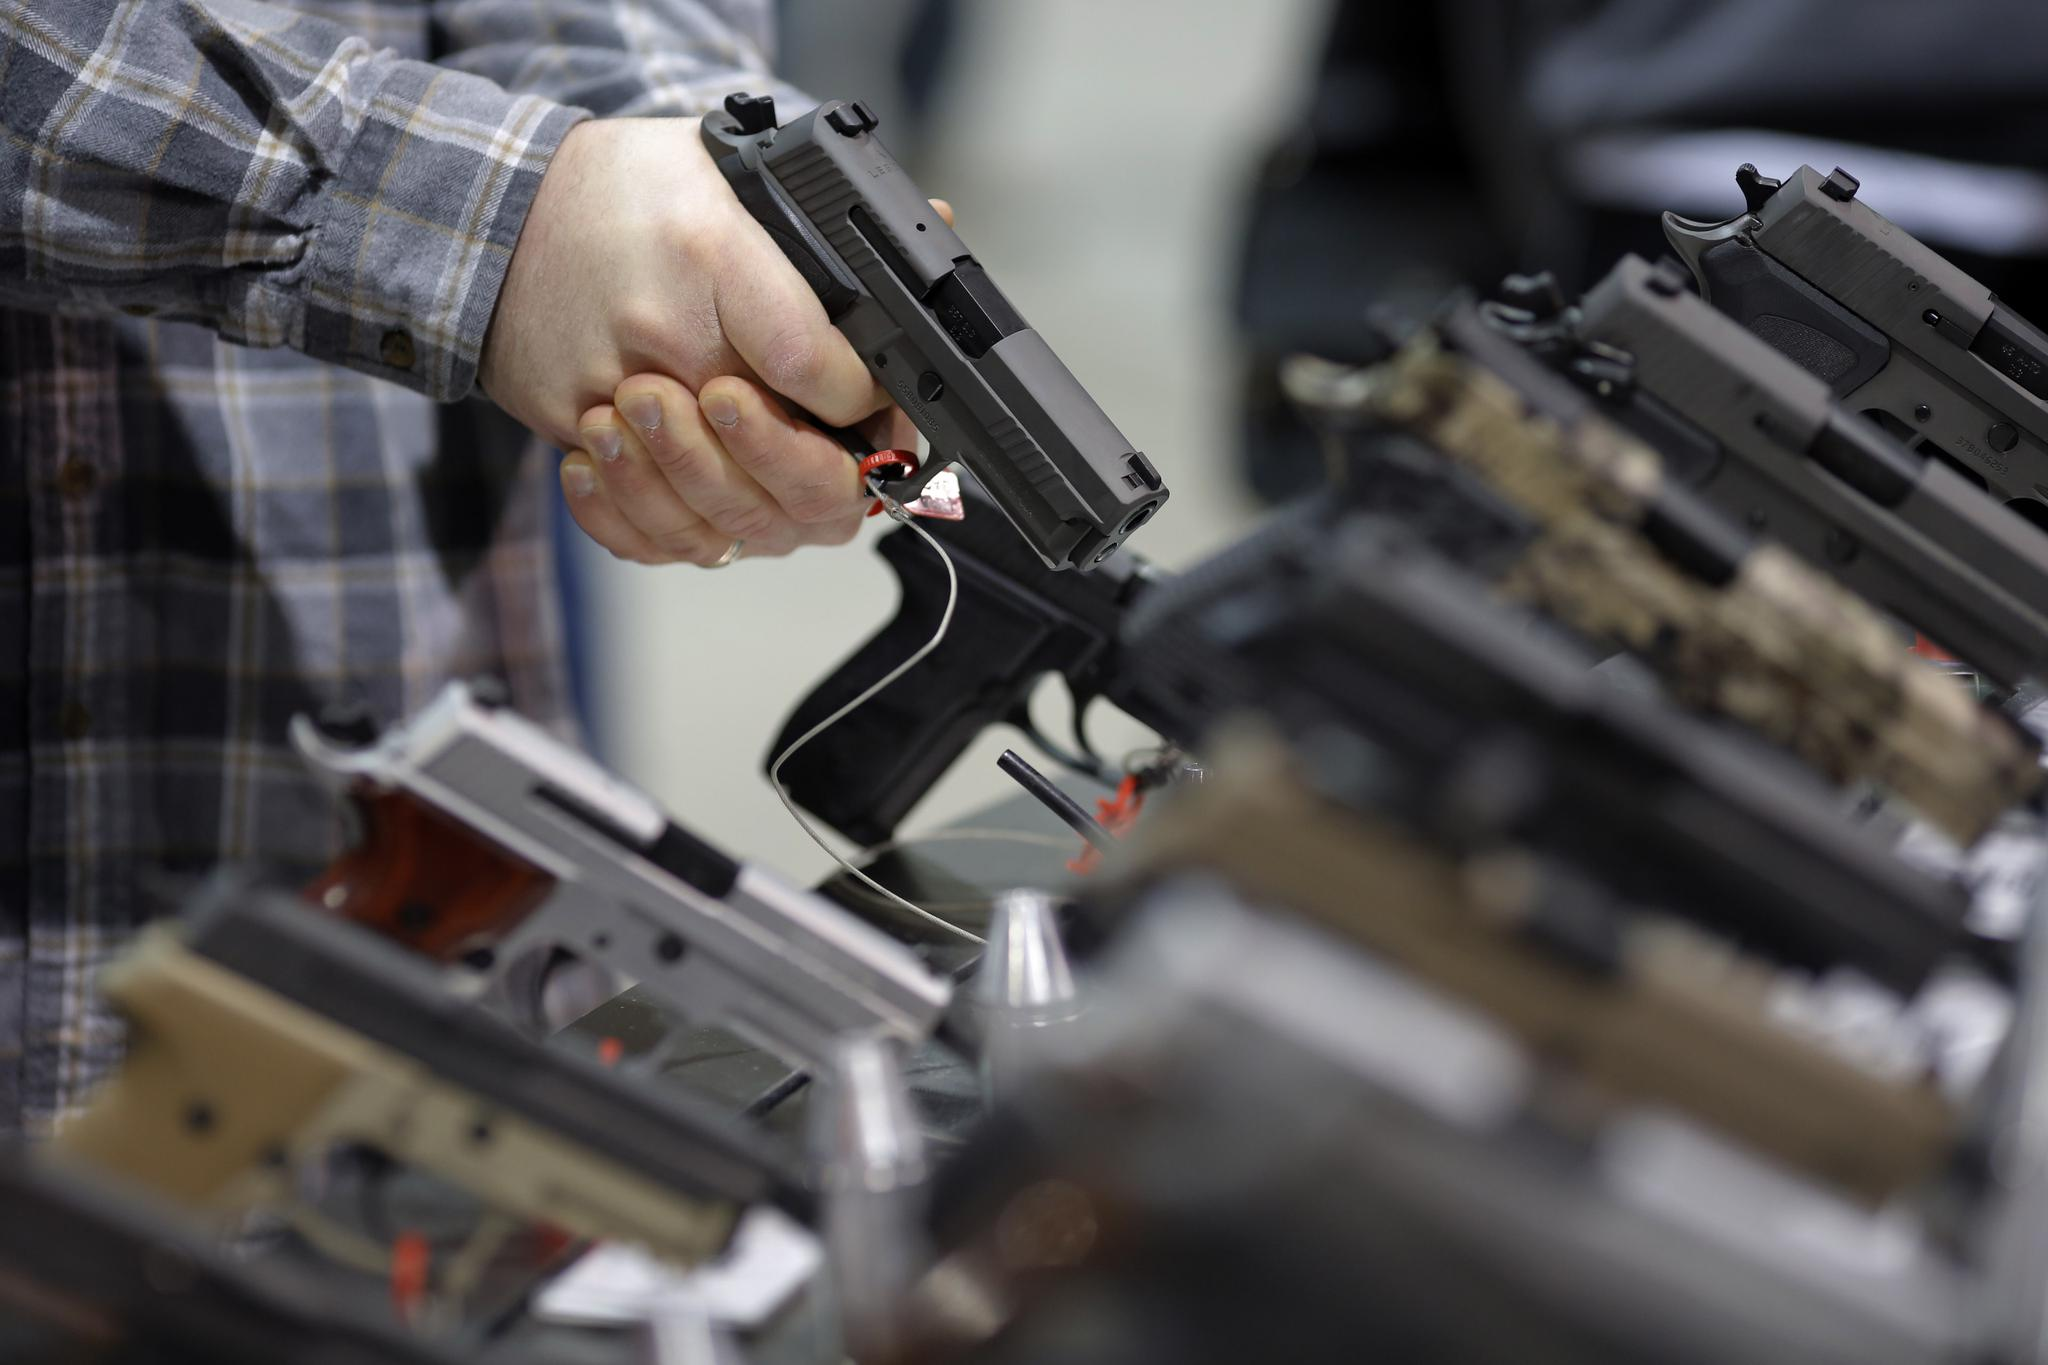 About 36 percent of Americans own a gun.